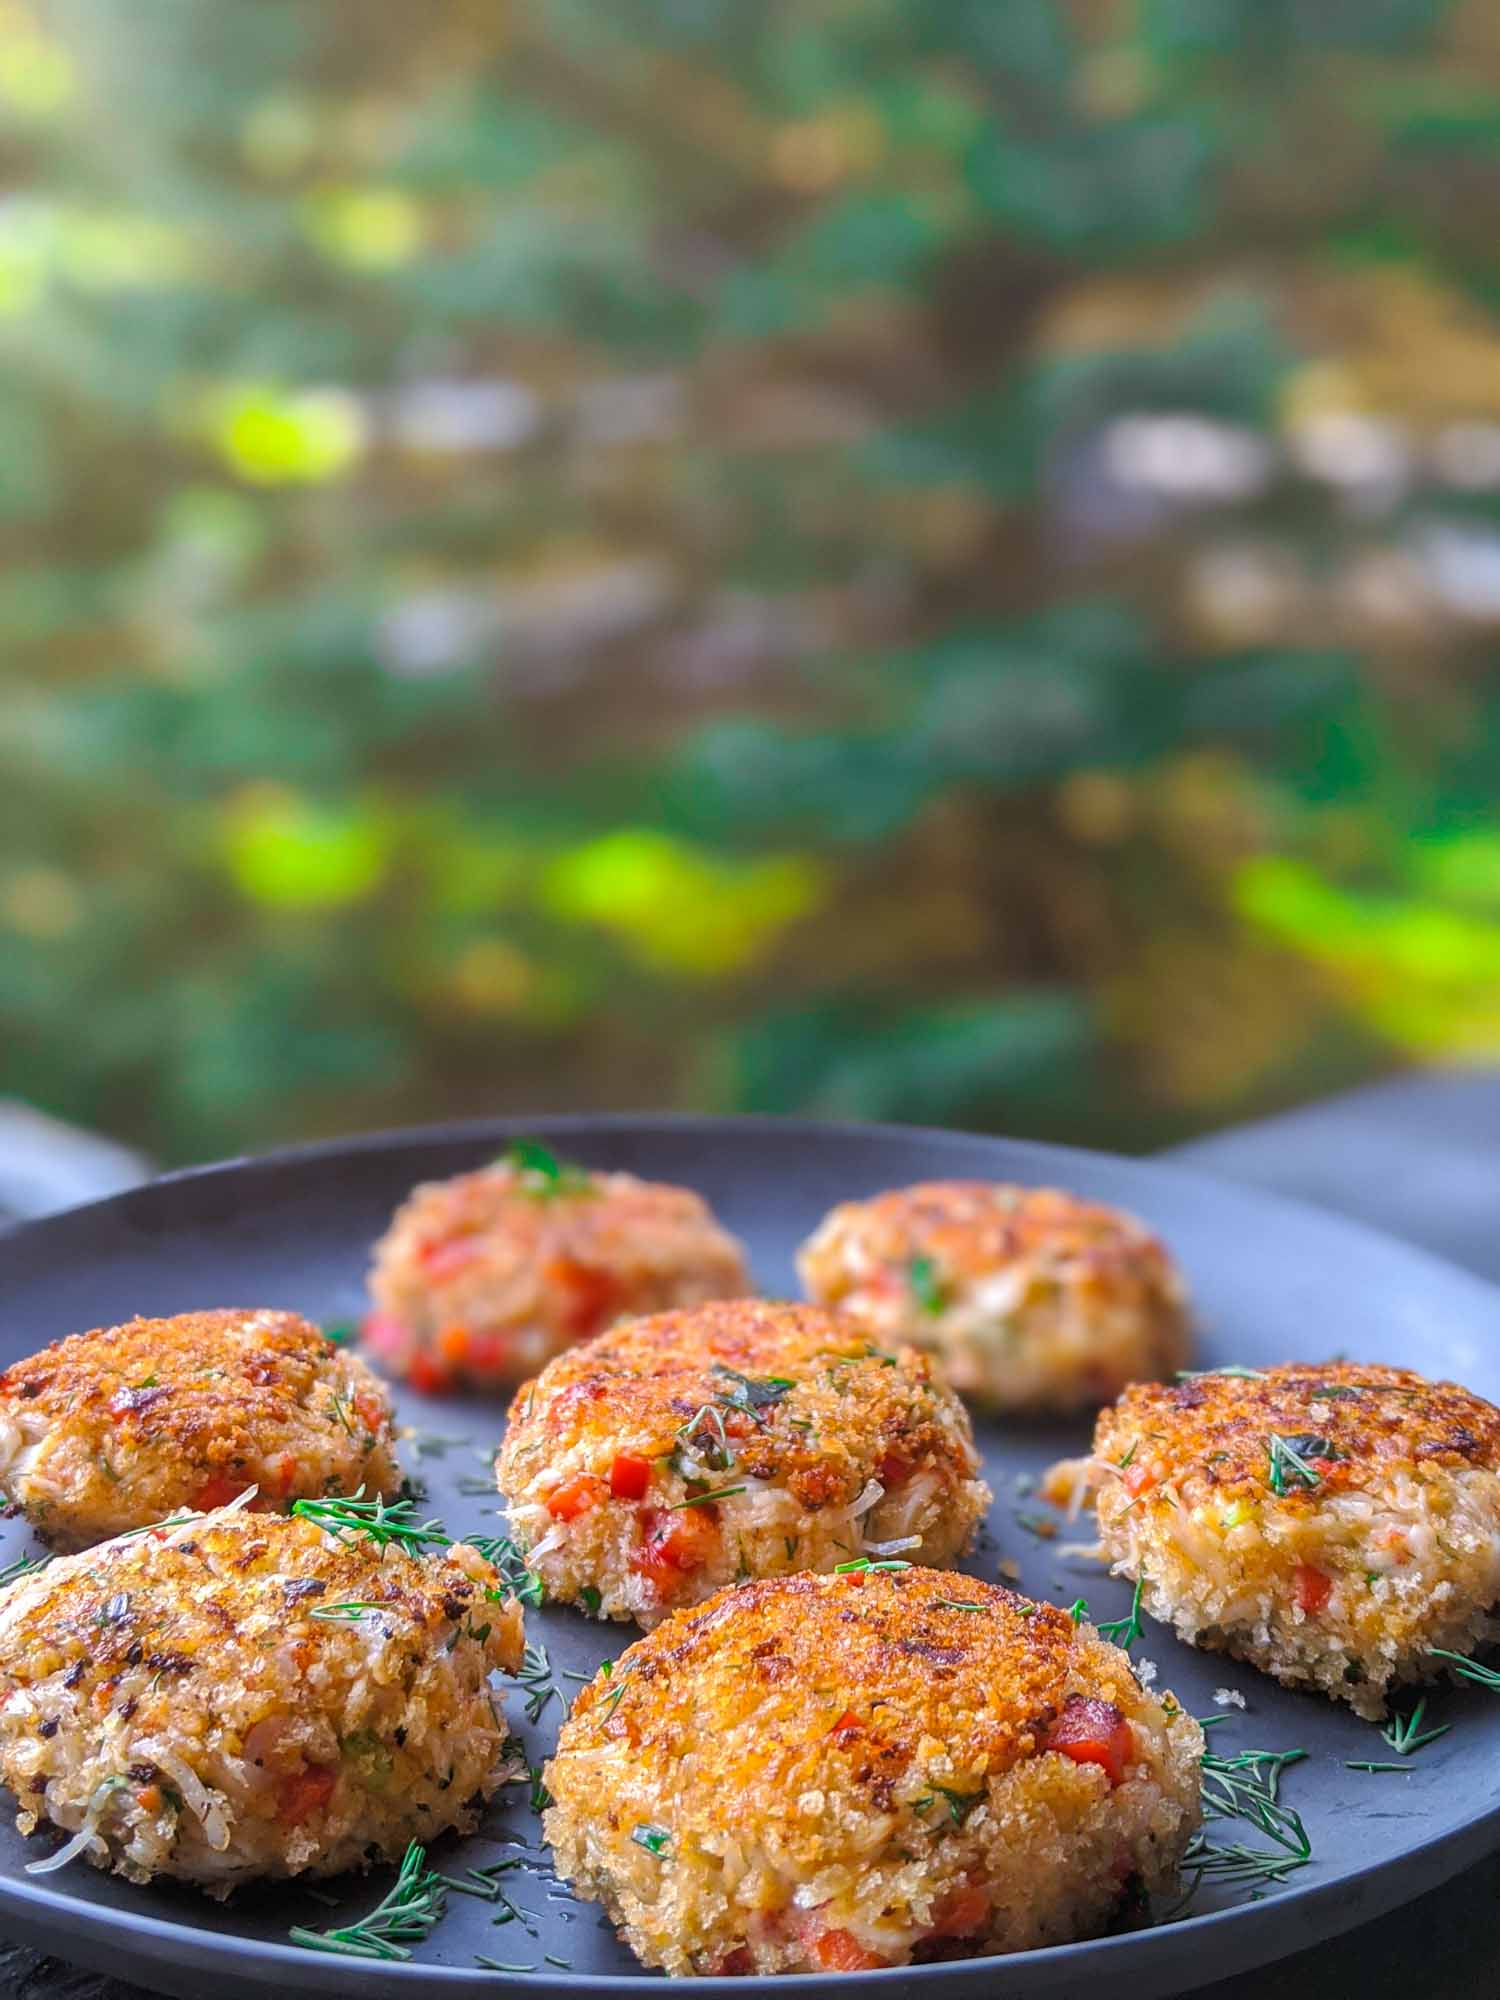 Snow crab cakes on a blue plate with trees in the background